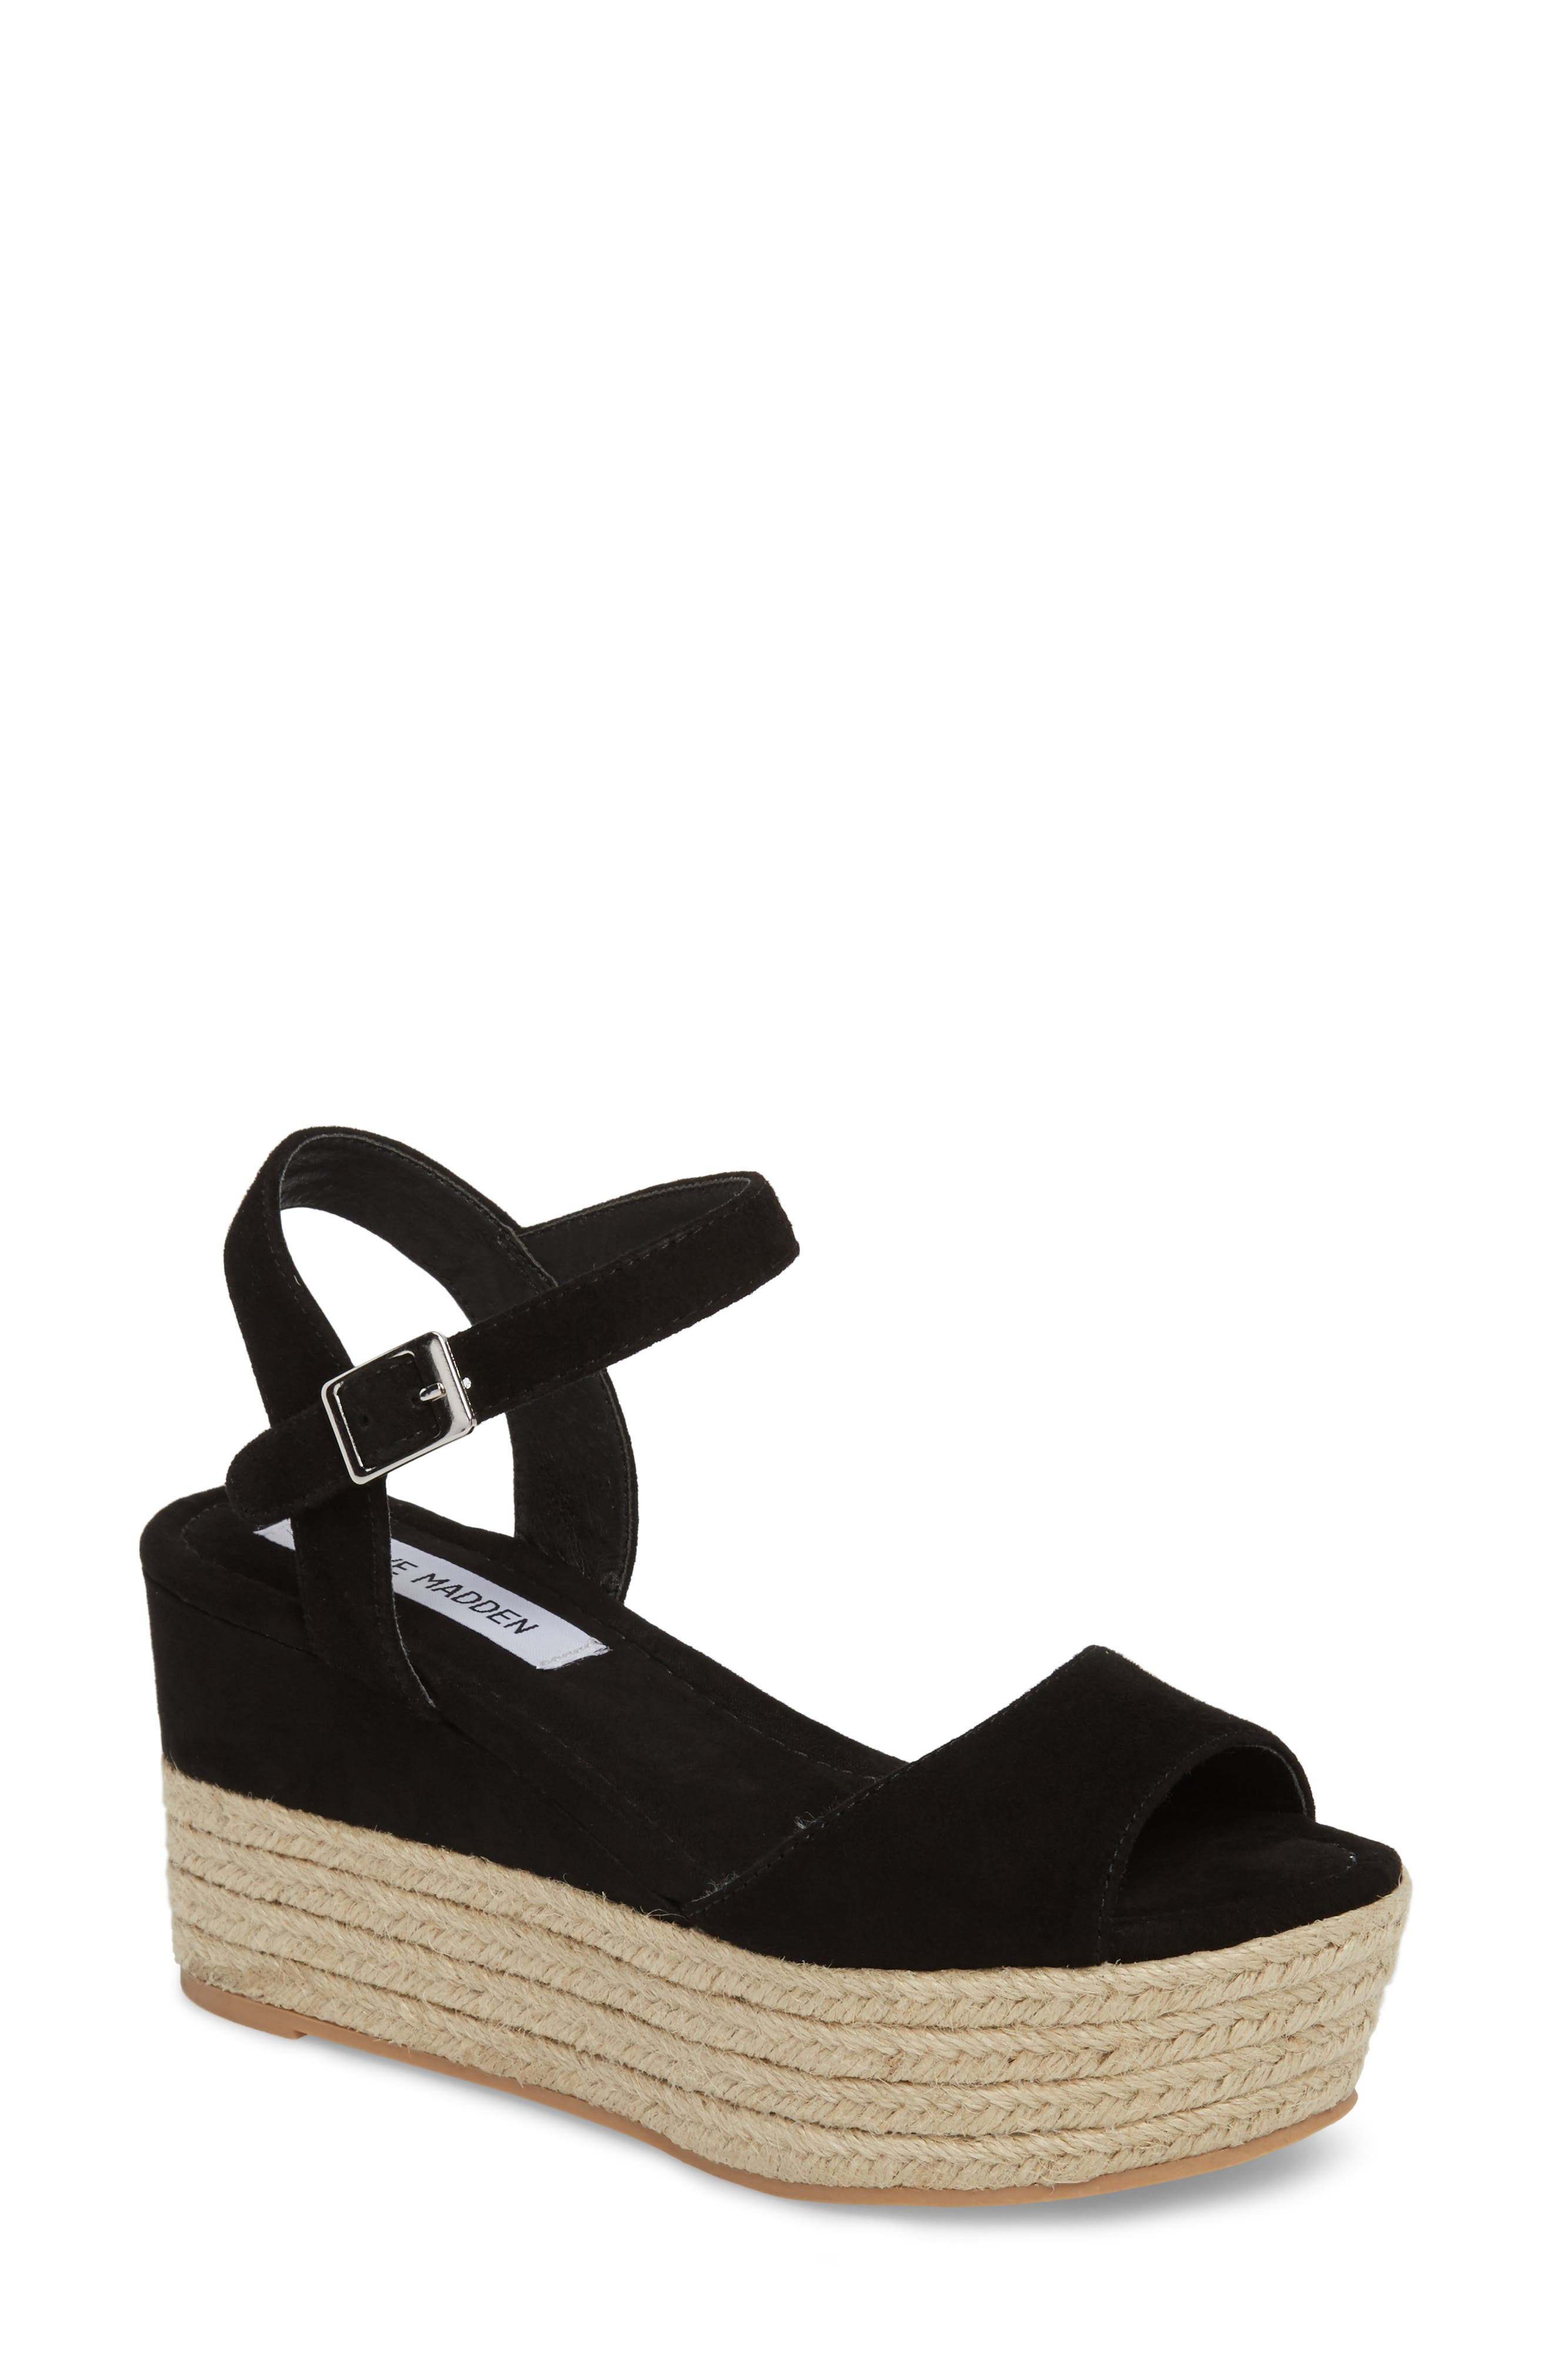 Kianna Espadrille Wedge Sandal,                             Main thumbnail 1, color,                             BLACK SUEDE